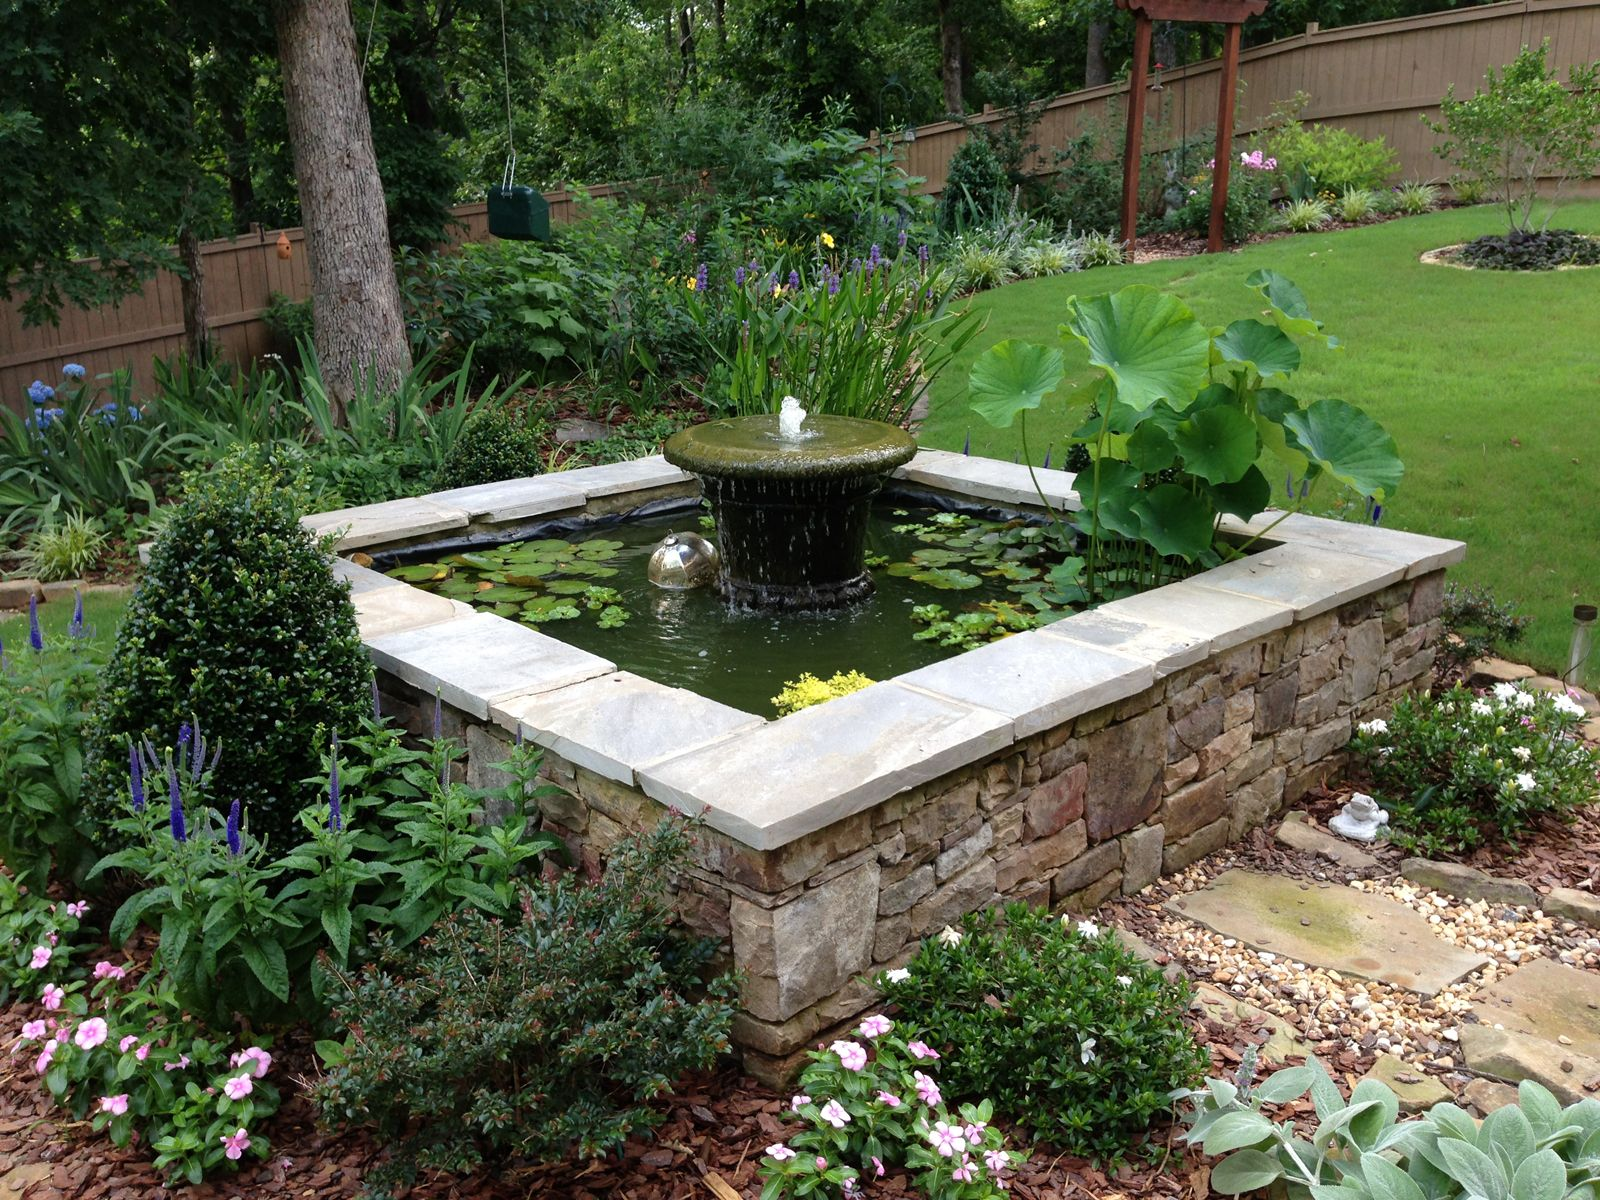 Square water pool carol bill 39 s garden in georgia for Best goldfish for outdoor pond